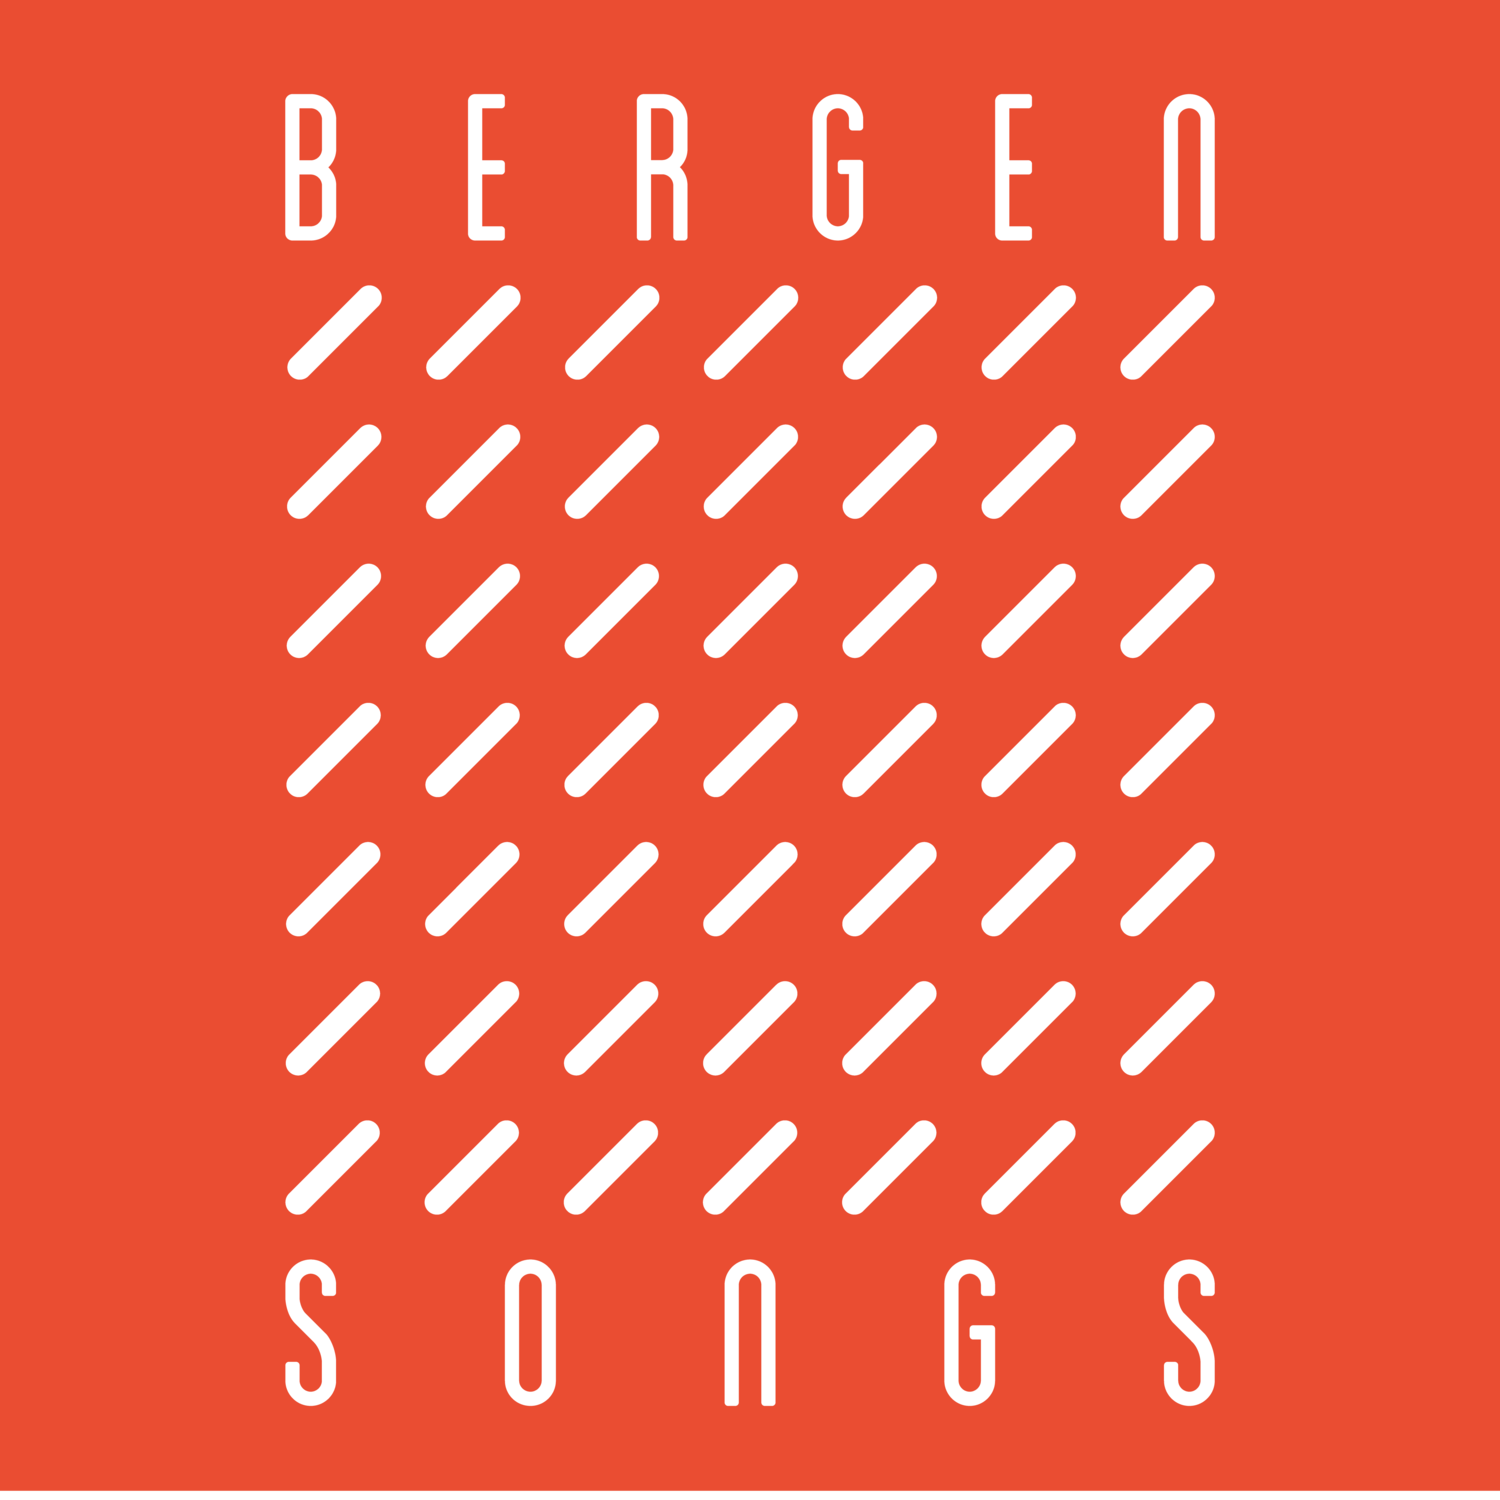 Bergen Songs 4-6 april 2018